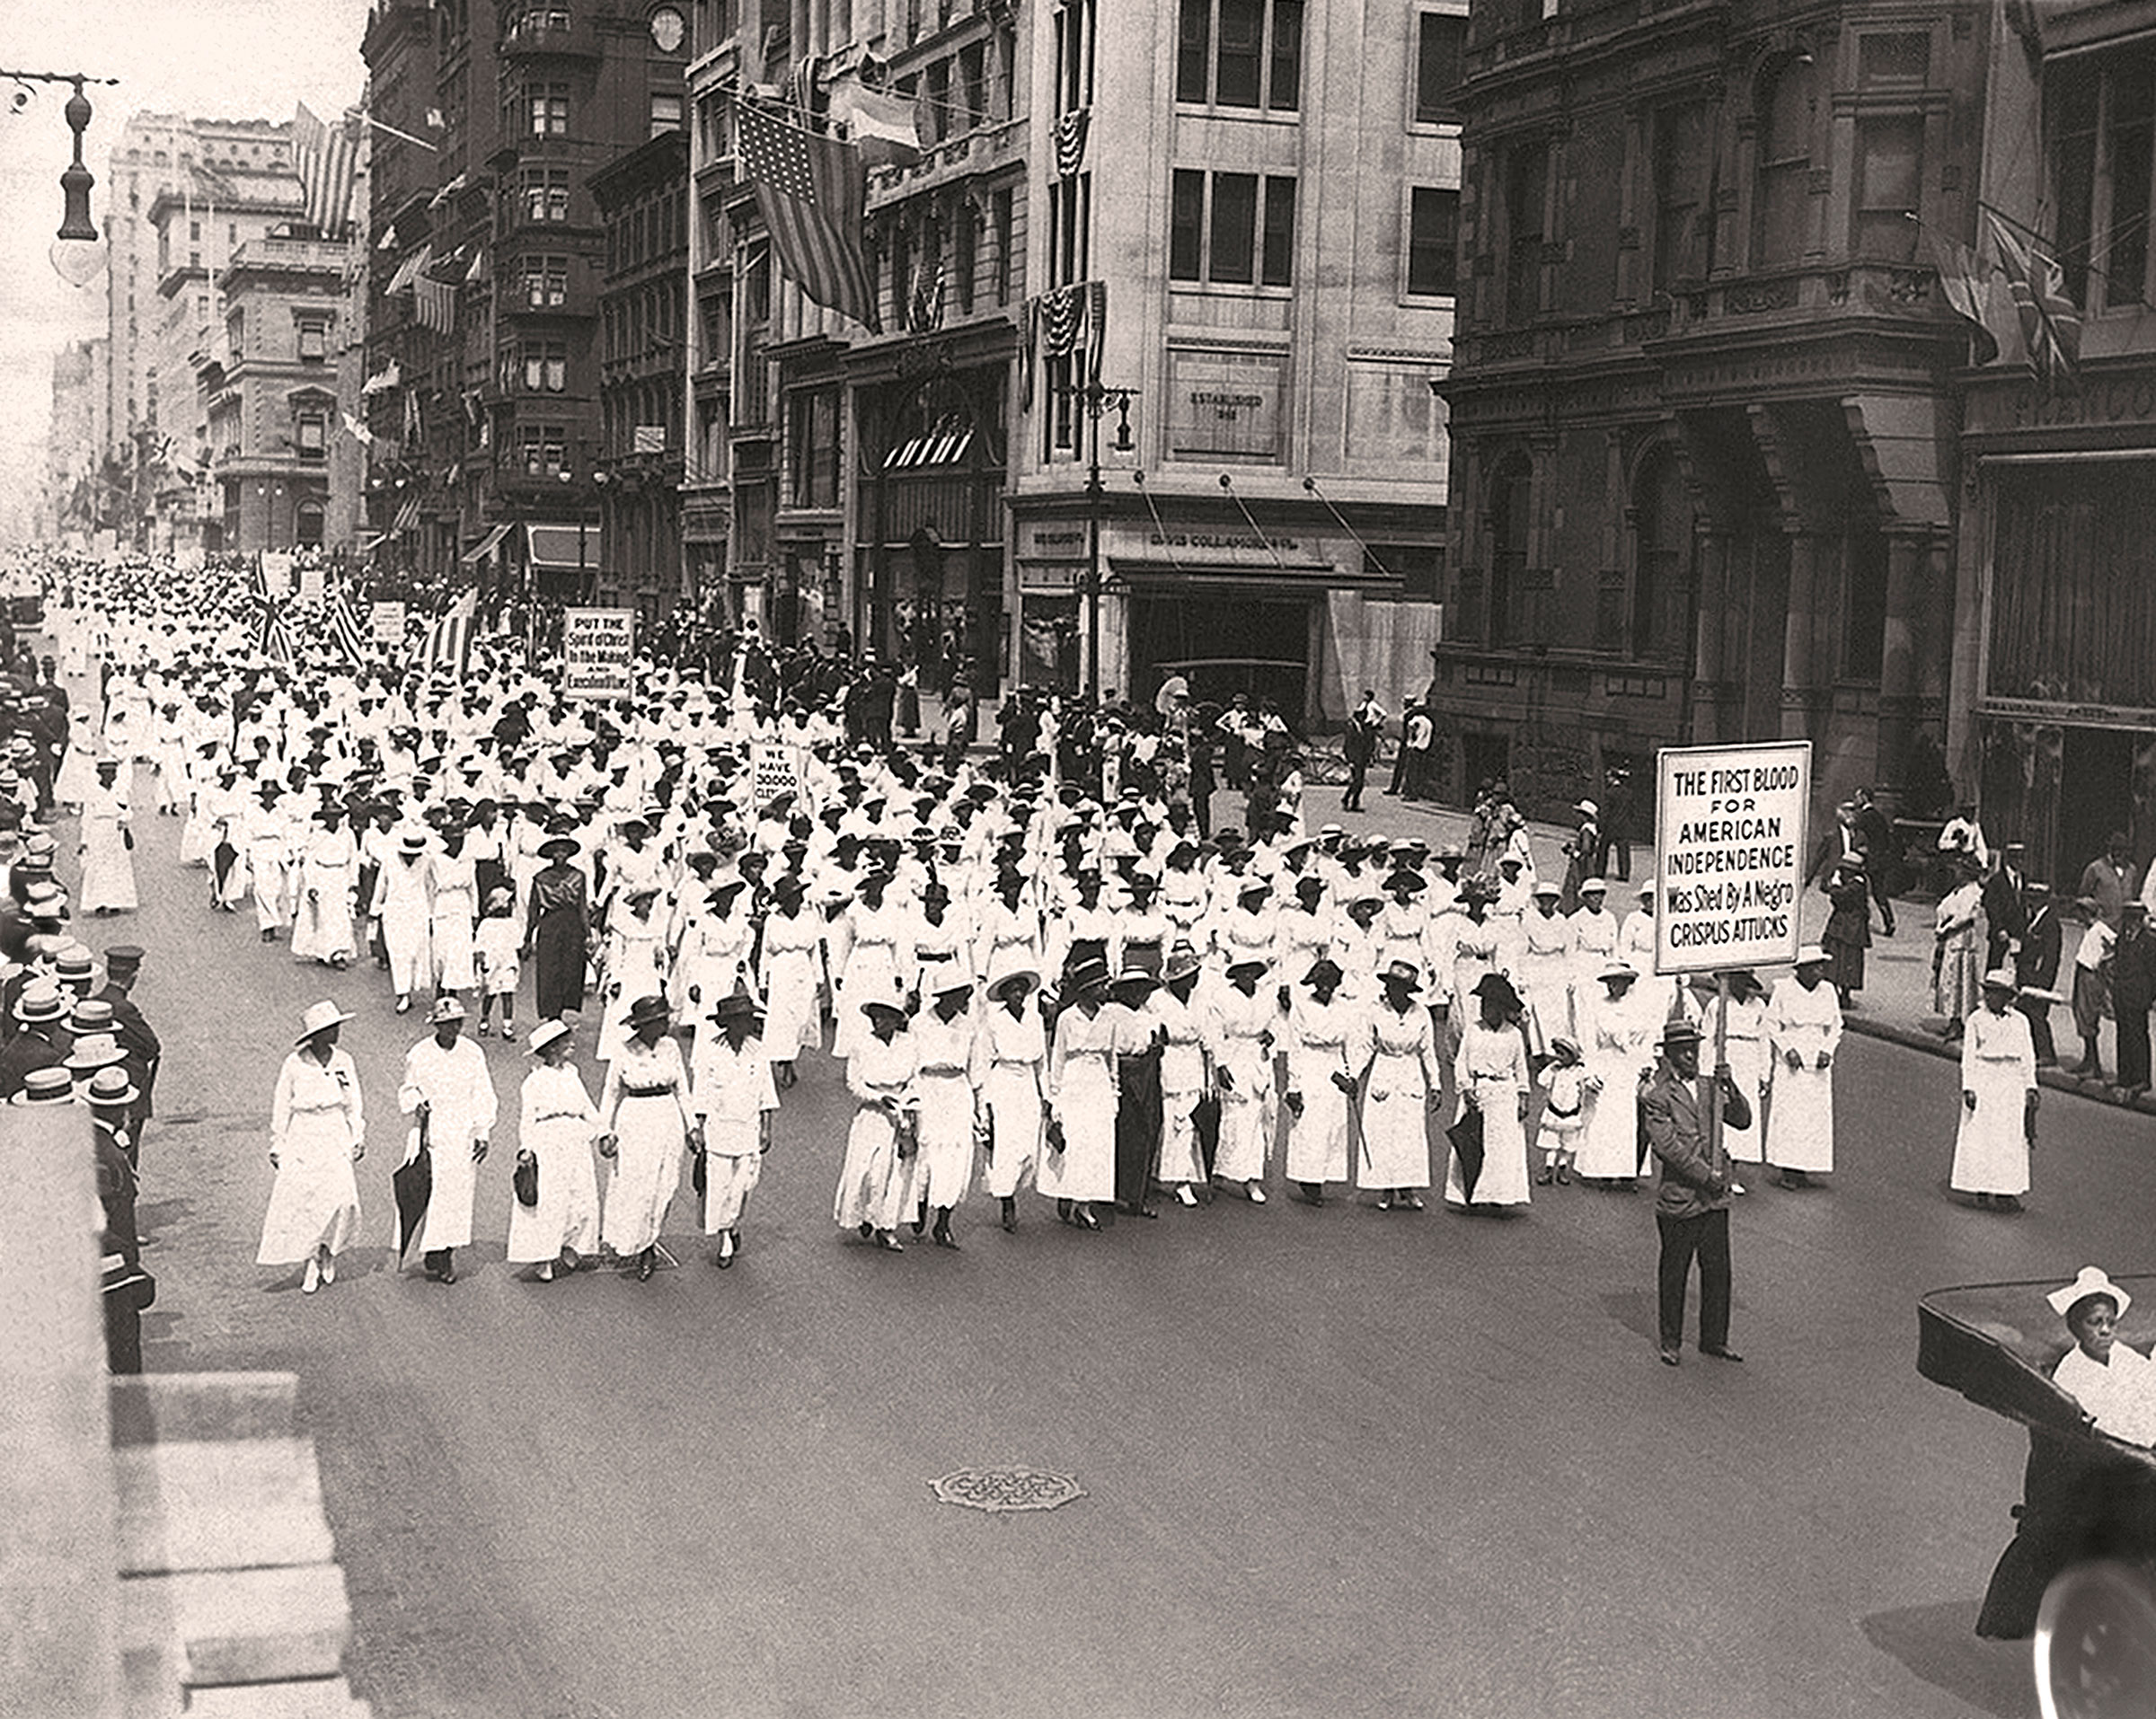 A silent march, to protest the police treatment of Black people in East St. Louis, in New York City, 1917.